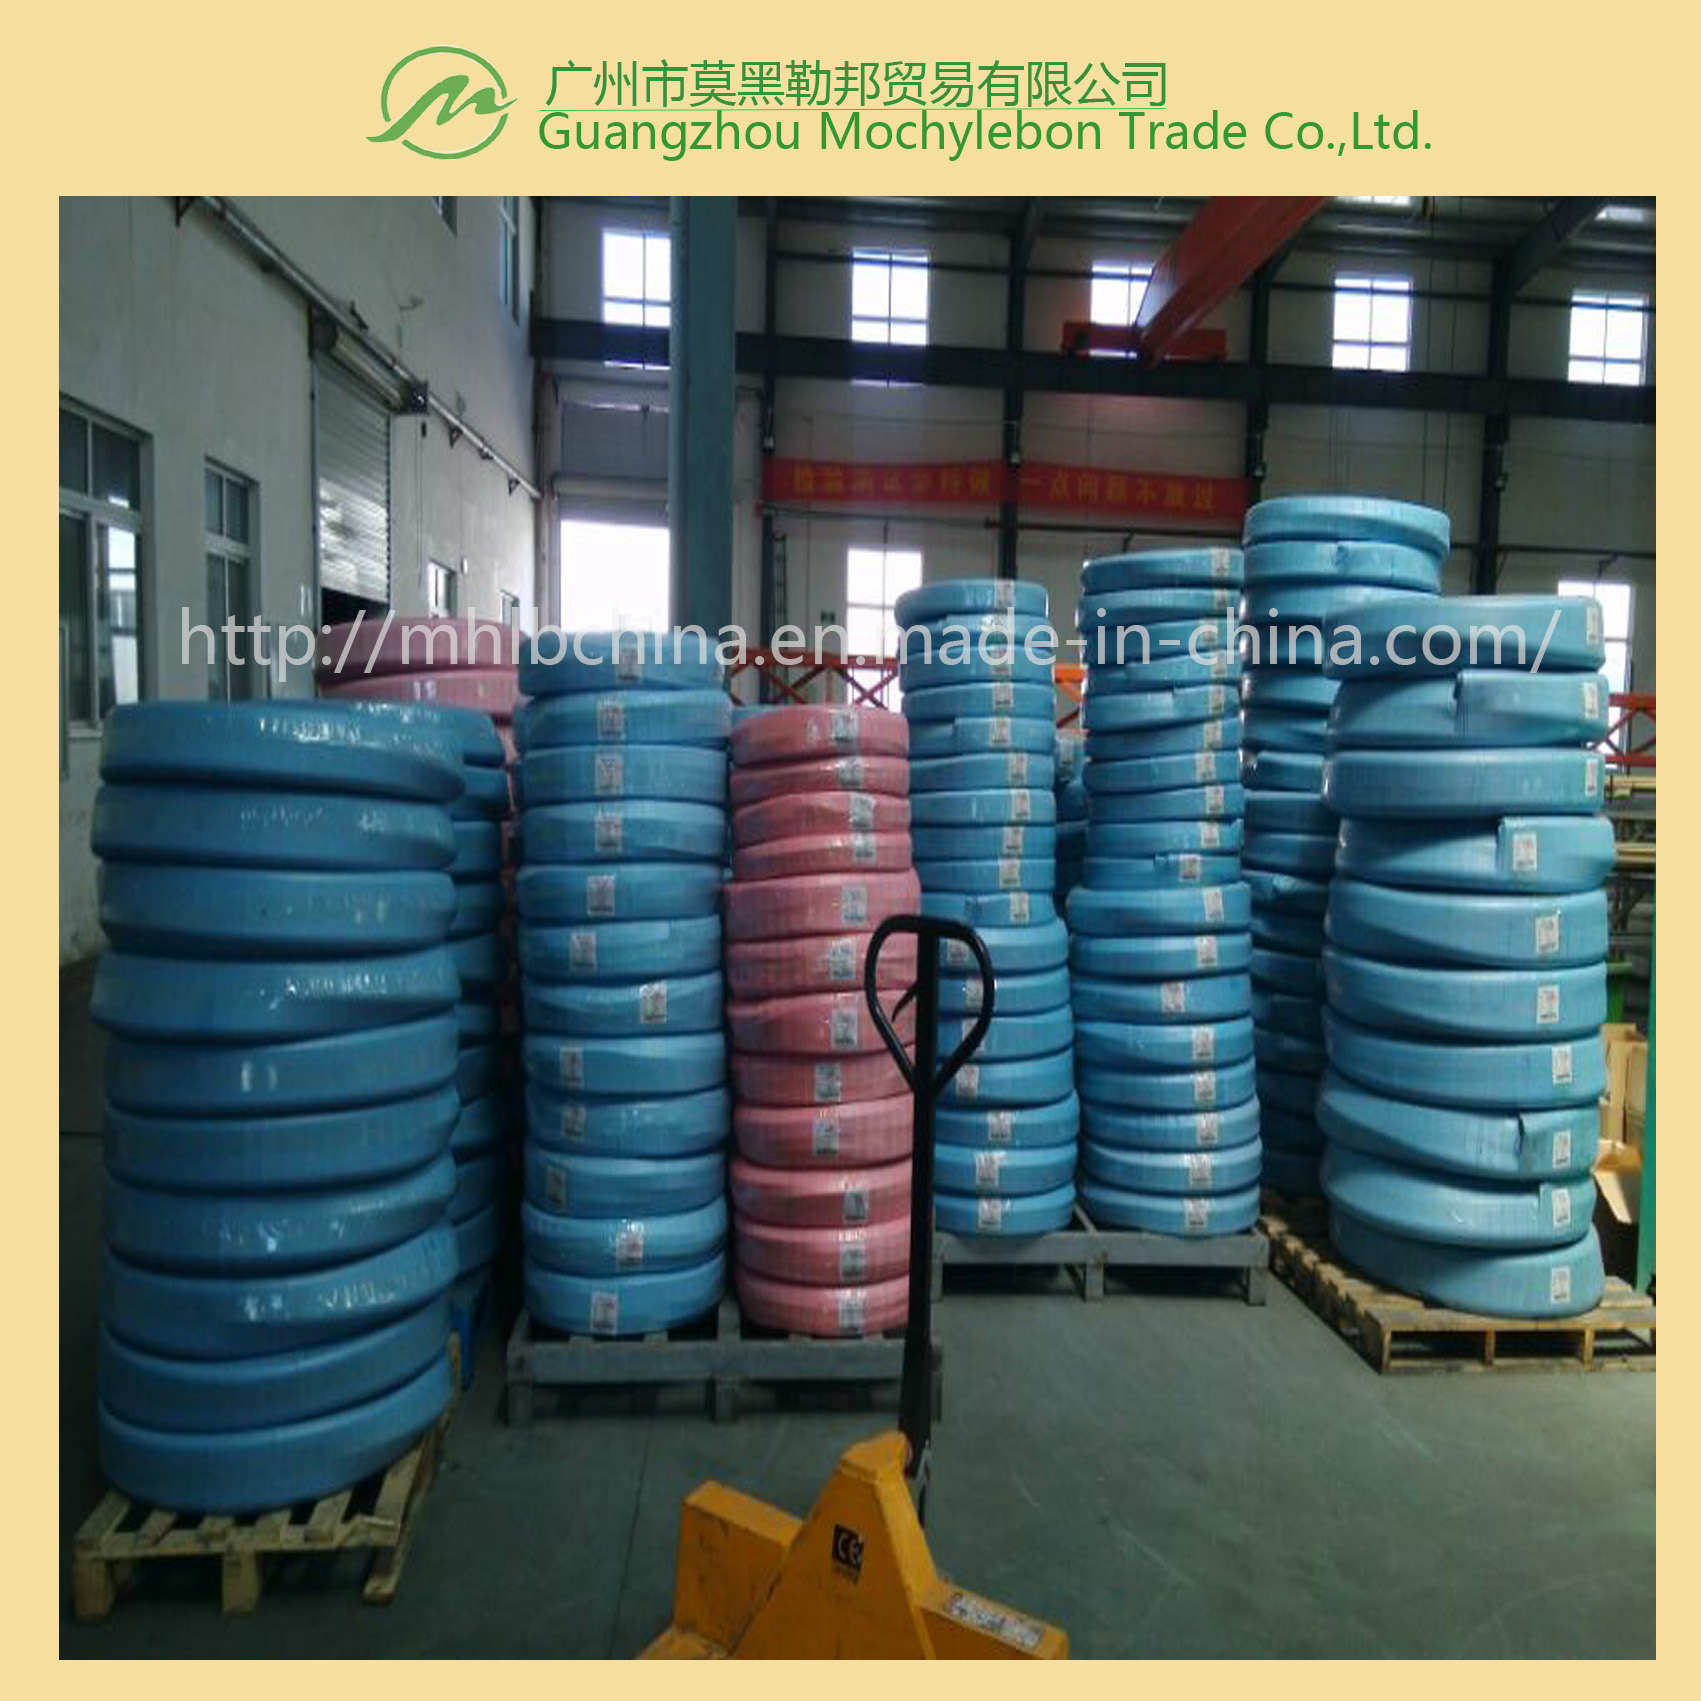 Steel Wire Braided Reinforced Rubber Covered Hydraulic Hose (SAE100 R1-R3AT)